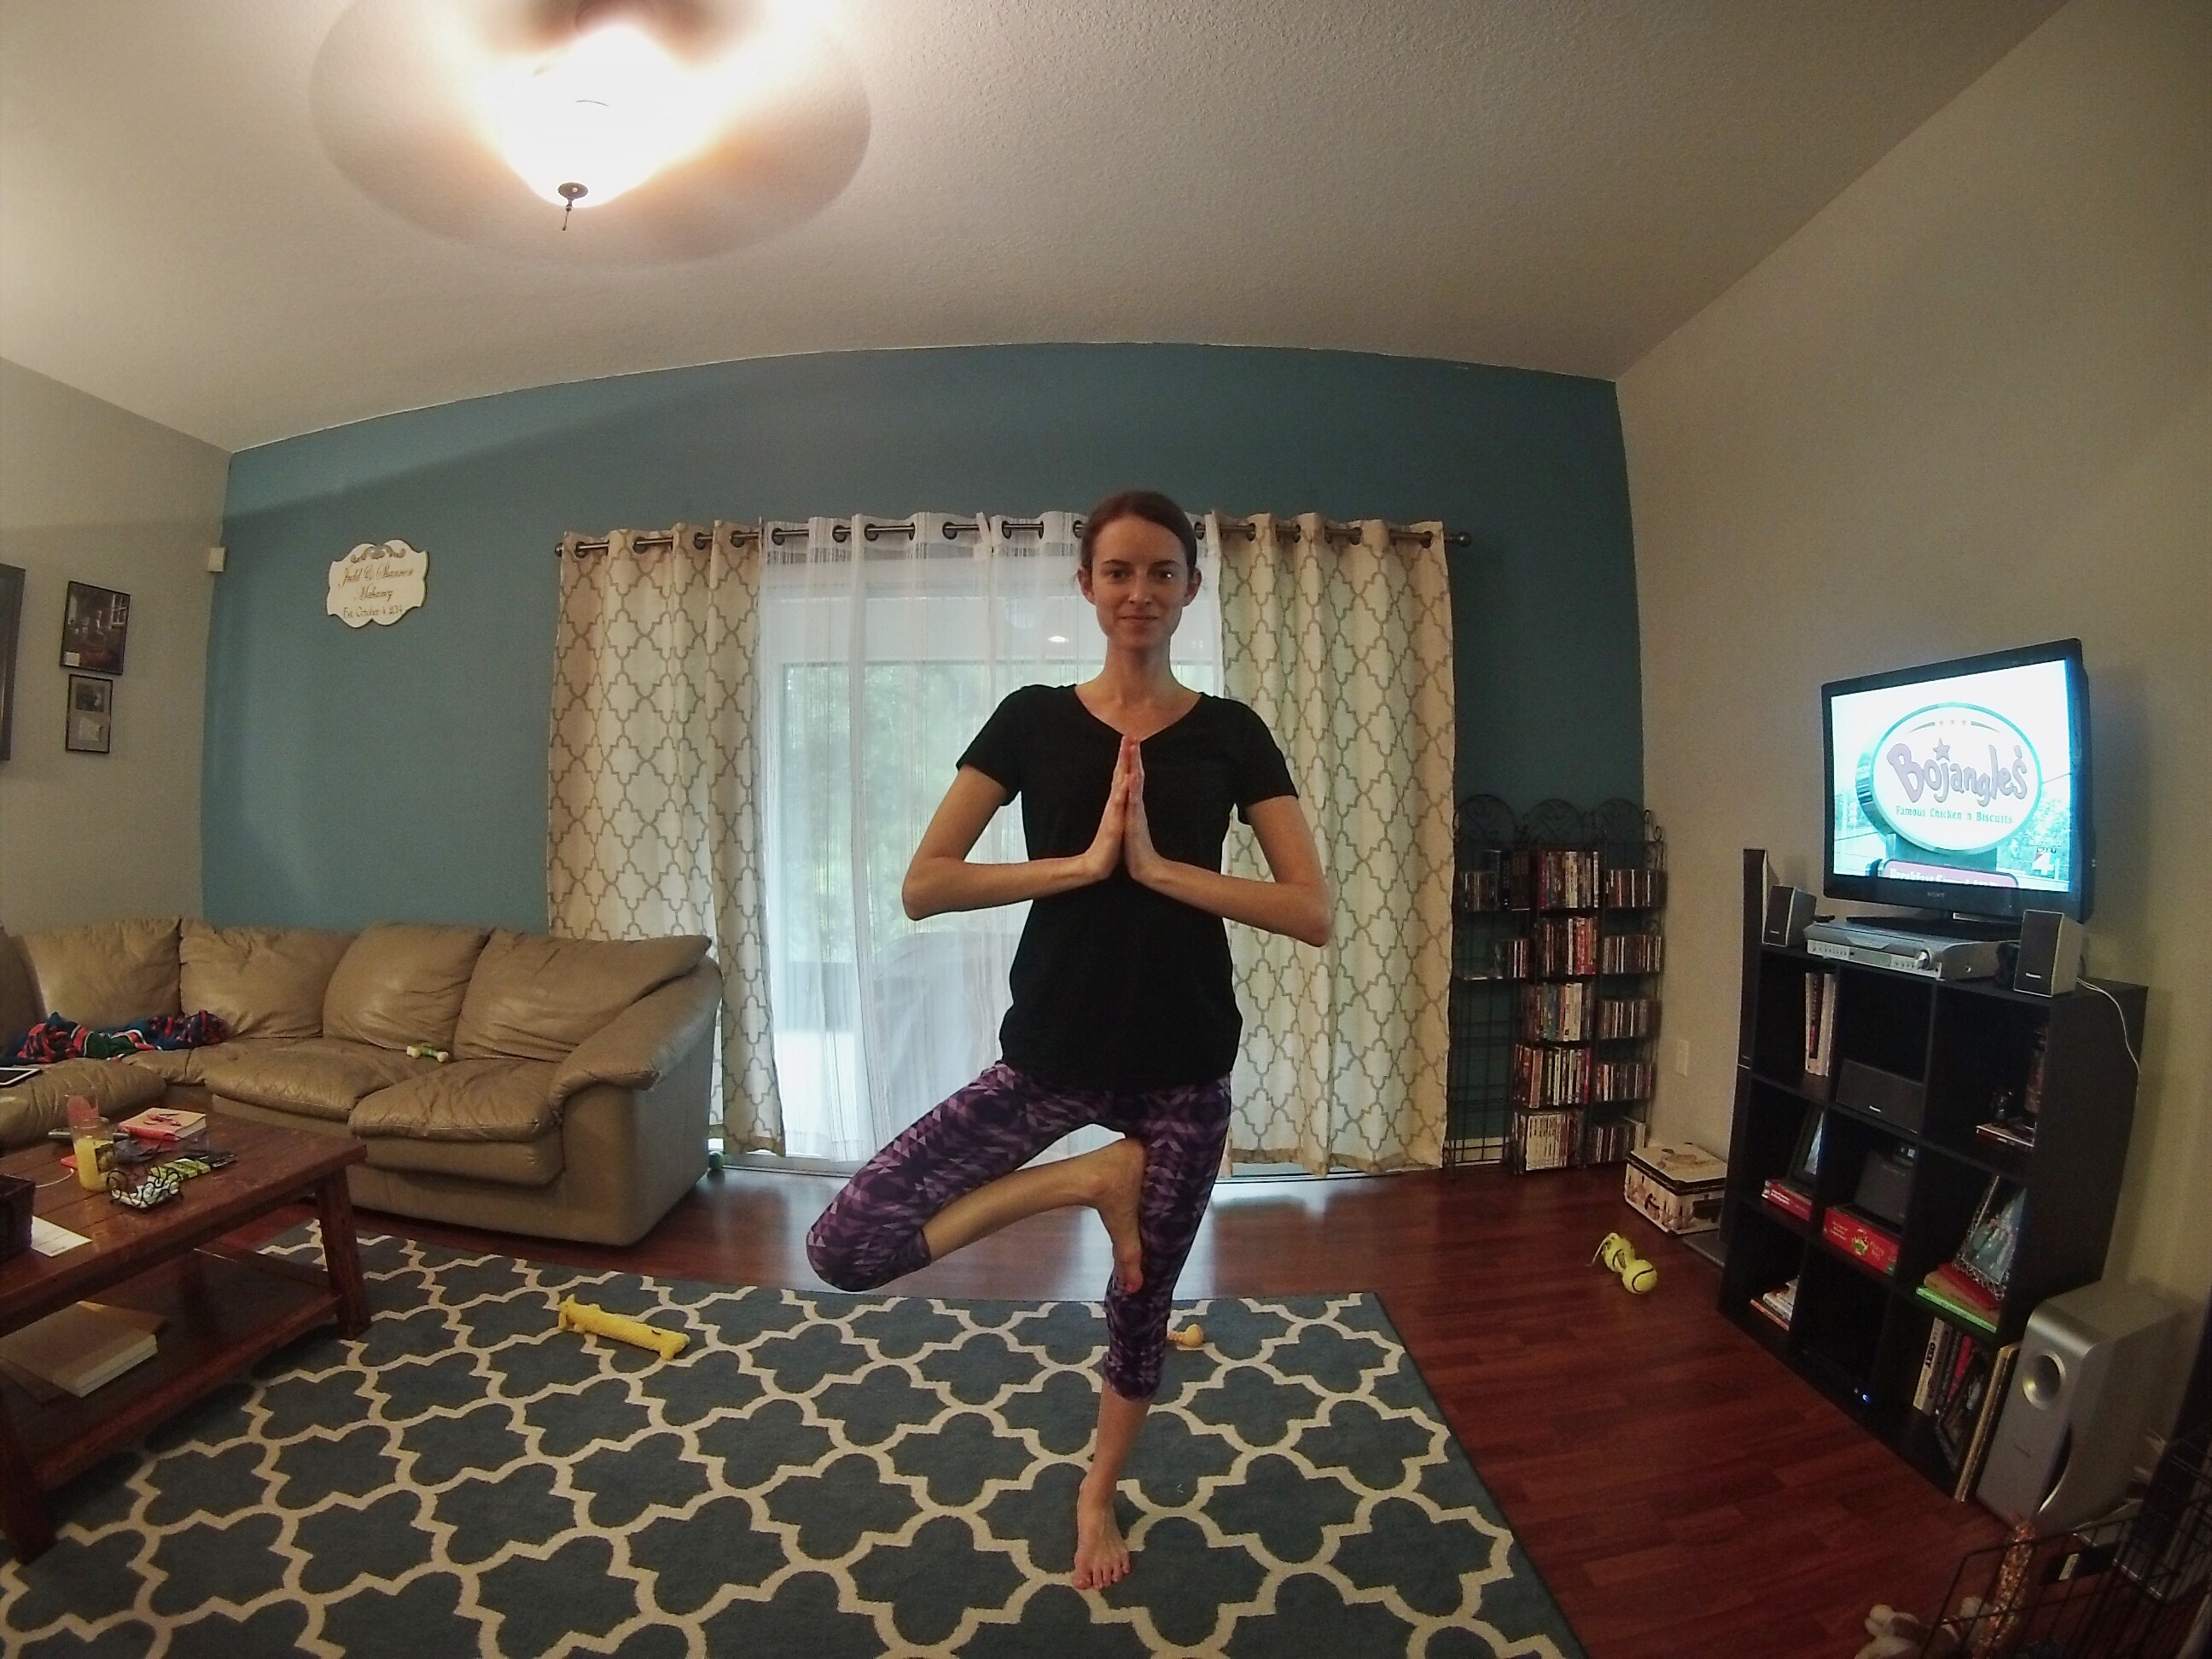 Tree Pose - Some Shananagins